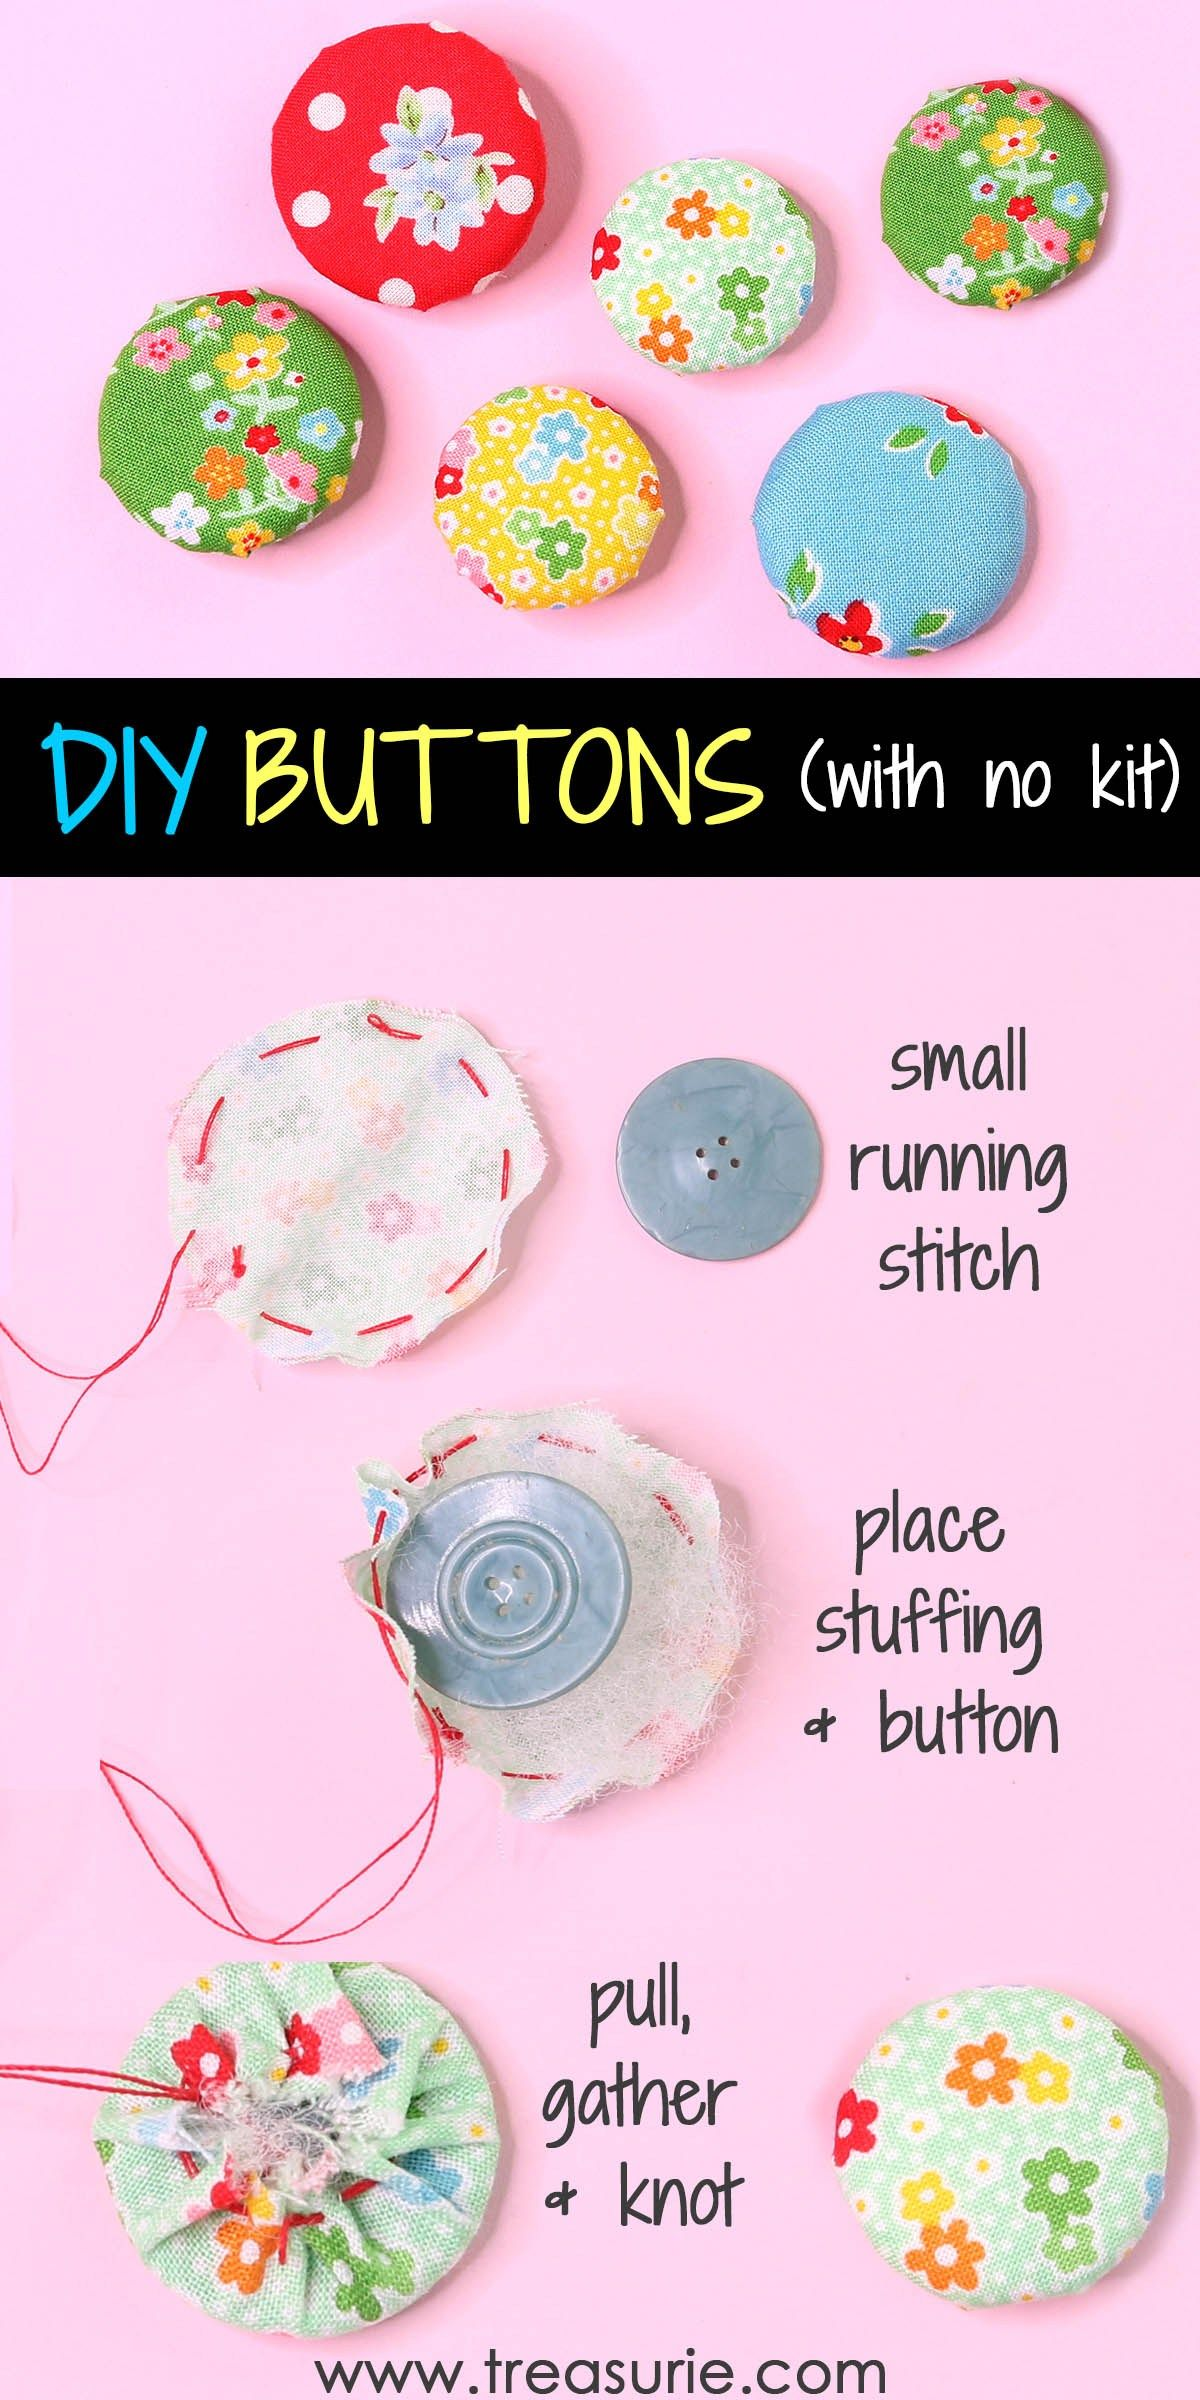 How To Make Fabric Buttons Kit And No Kit Treasurie In 2020 Fabric Crafts Fabric Crafts Diy Fabric Flowers Diy